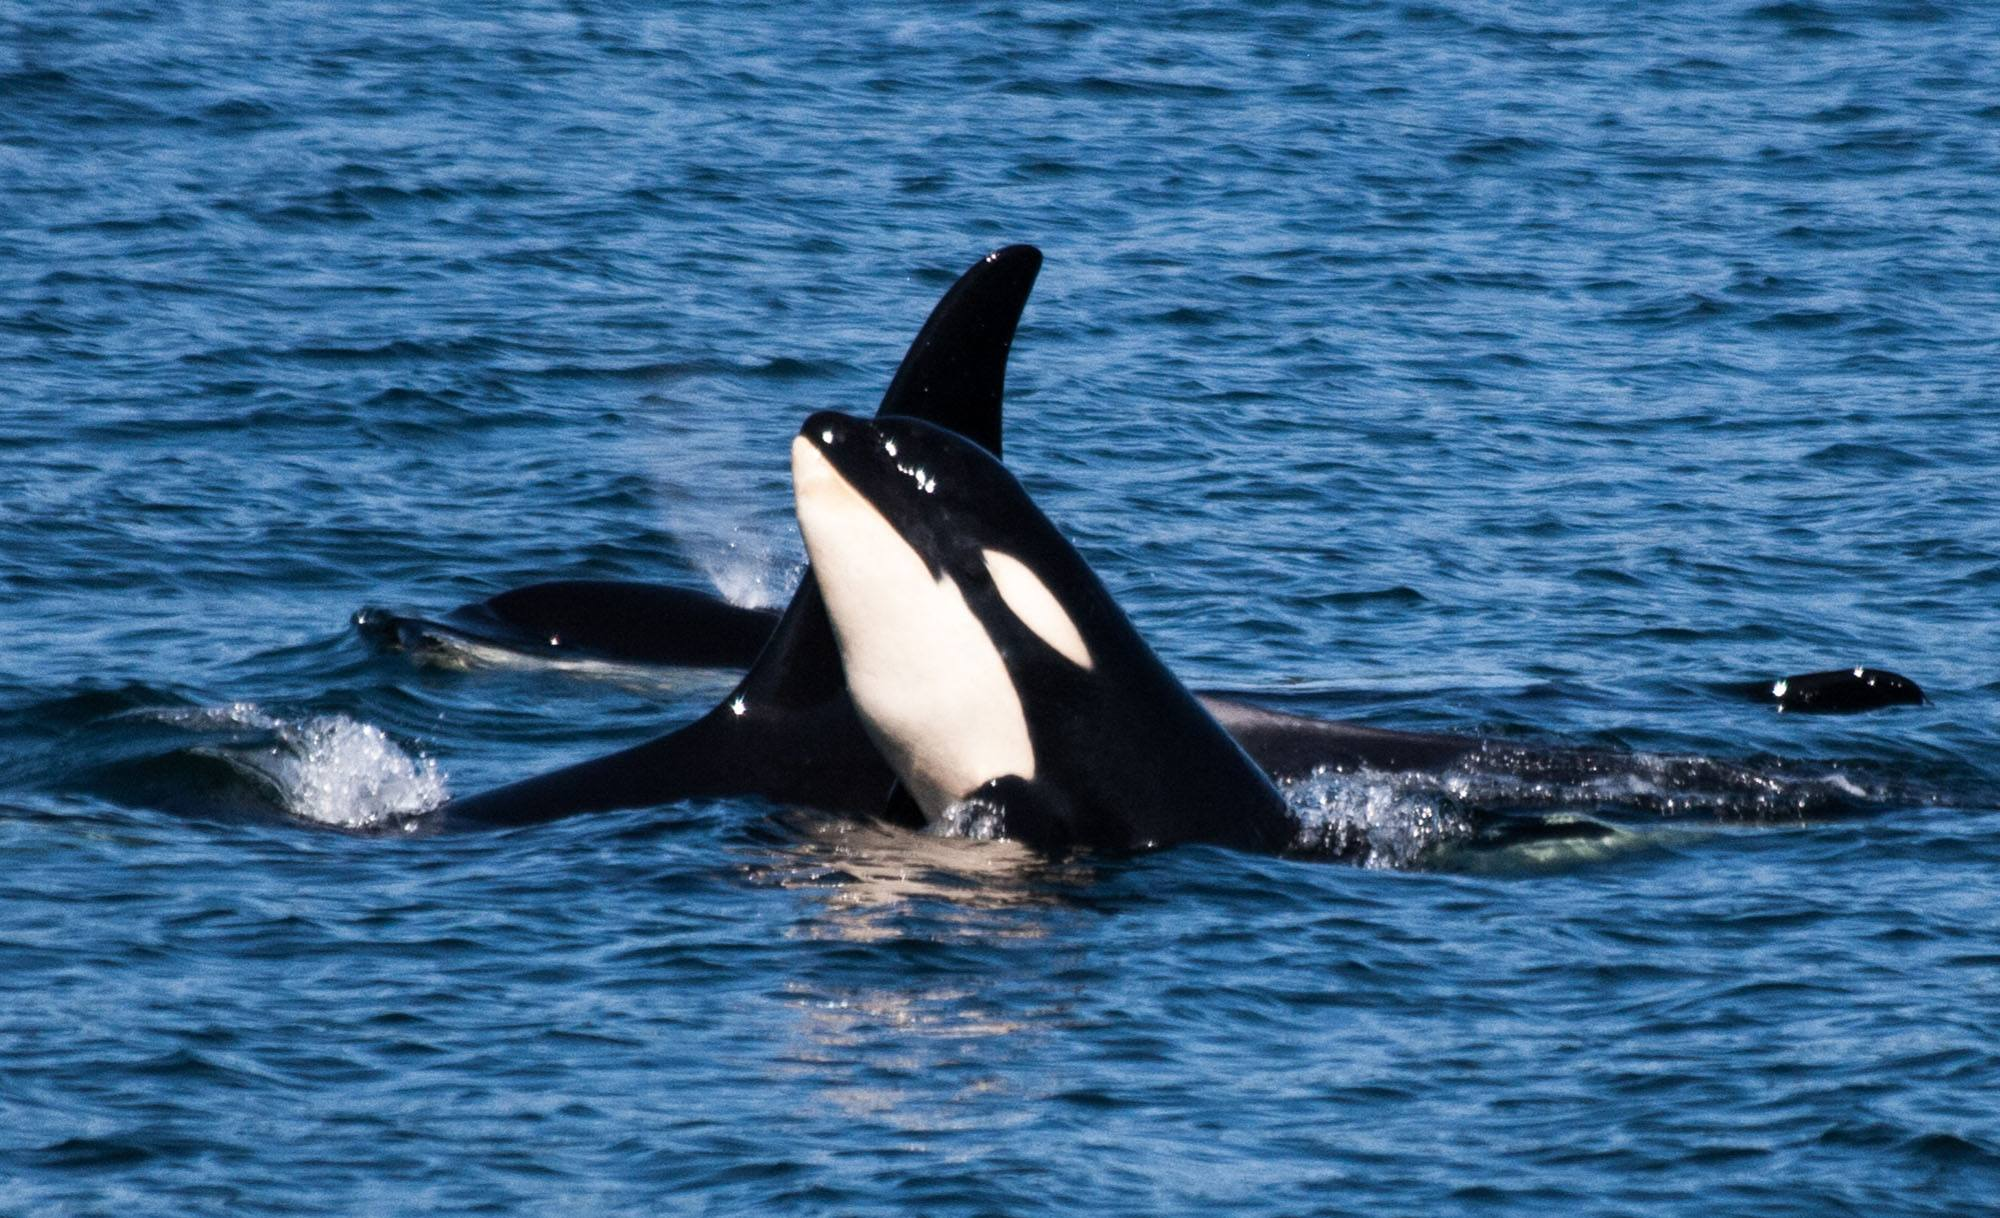 Orca calf Scarlett (J50) with Slick (J16). Photo by Naturalist Renee Beitzel, Puget Sound Express Whale Watching, Edmonds WA